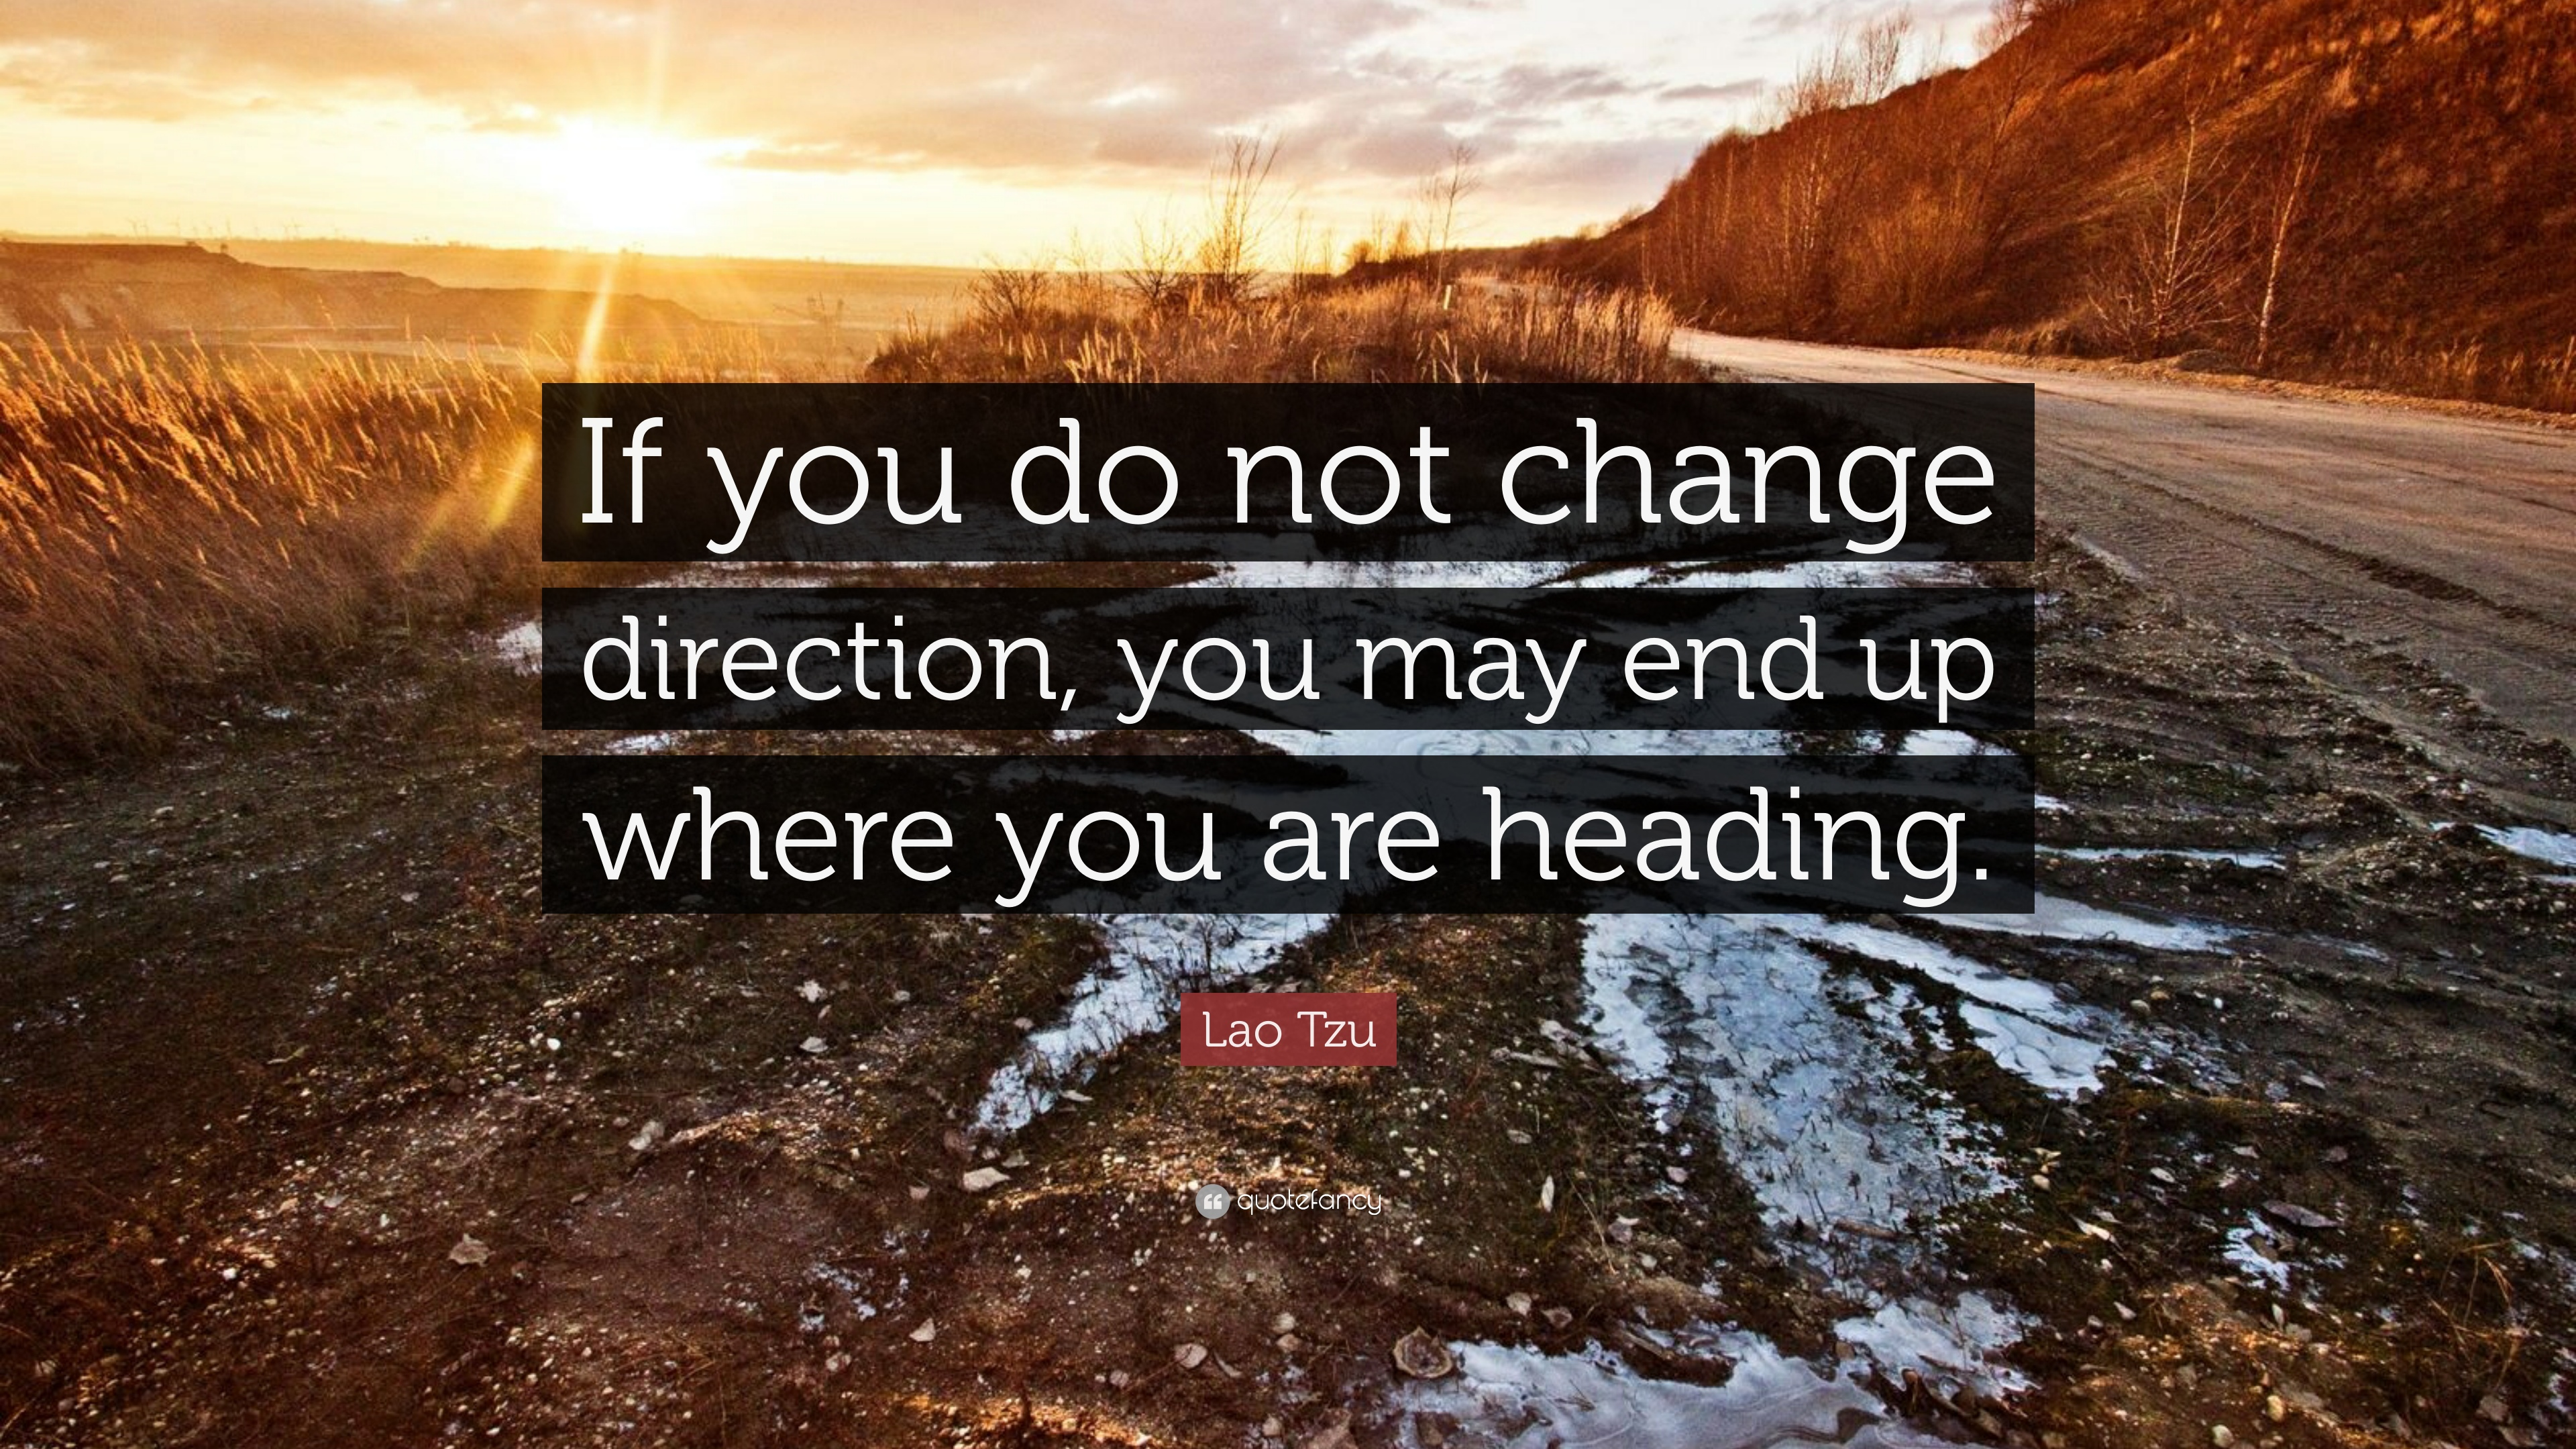 Lao Tzu If You Do Not Change Direction